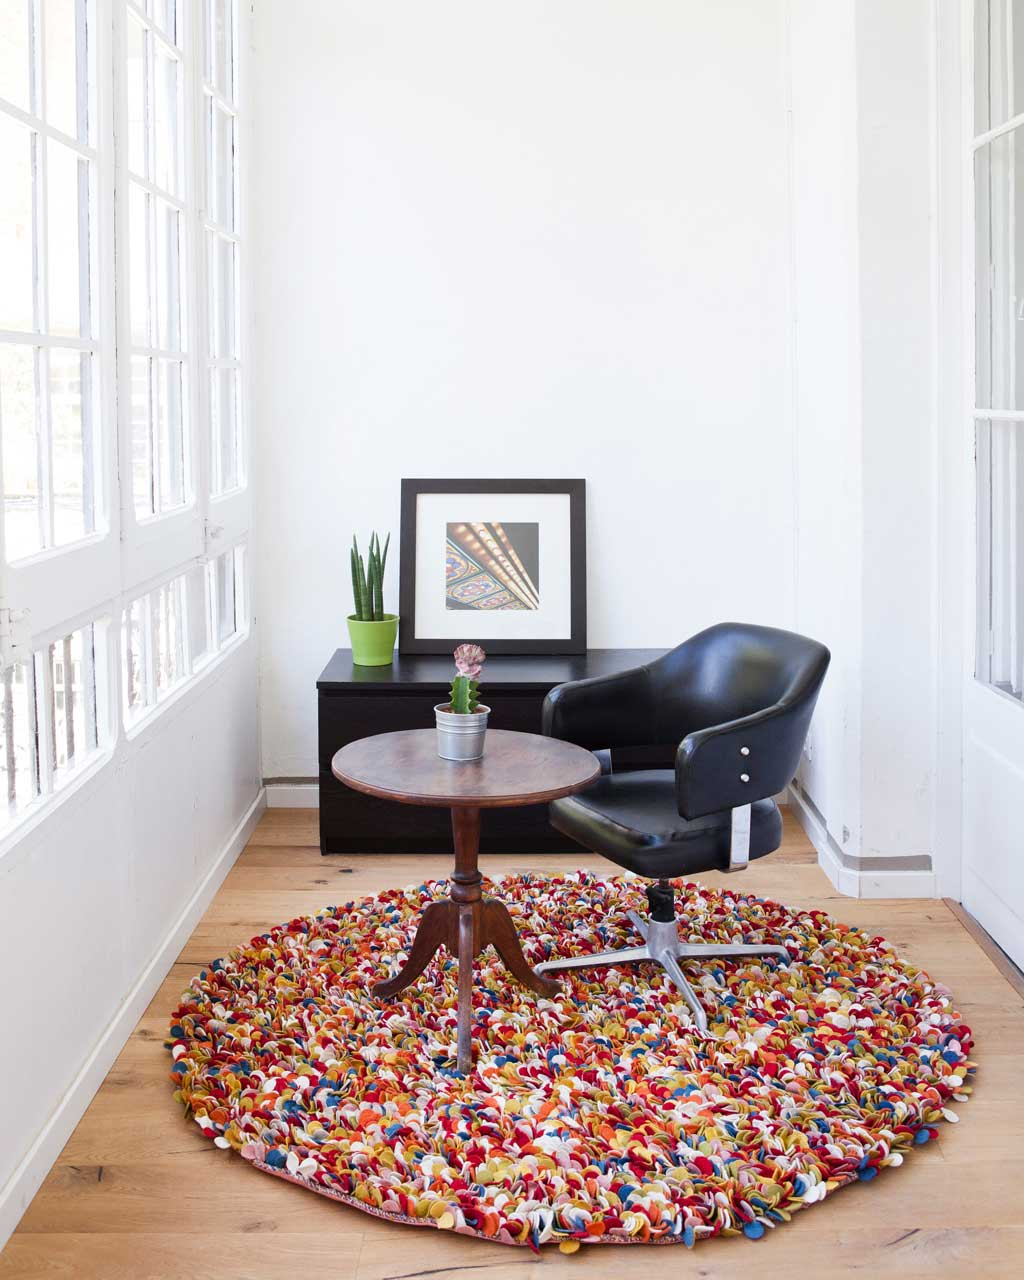 black chair barcelona apartment designer